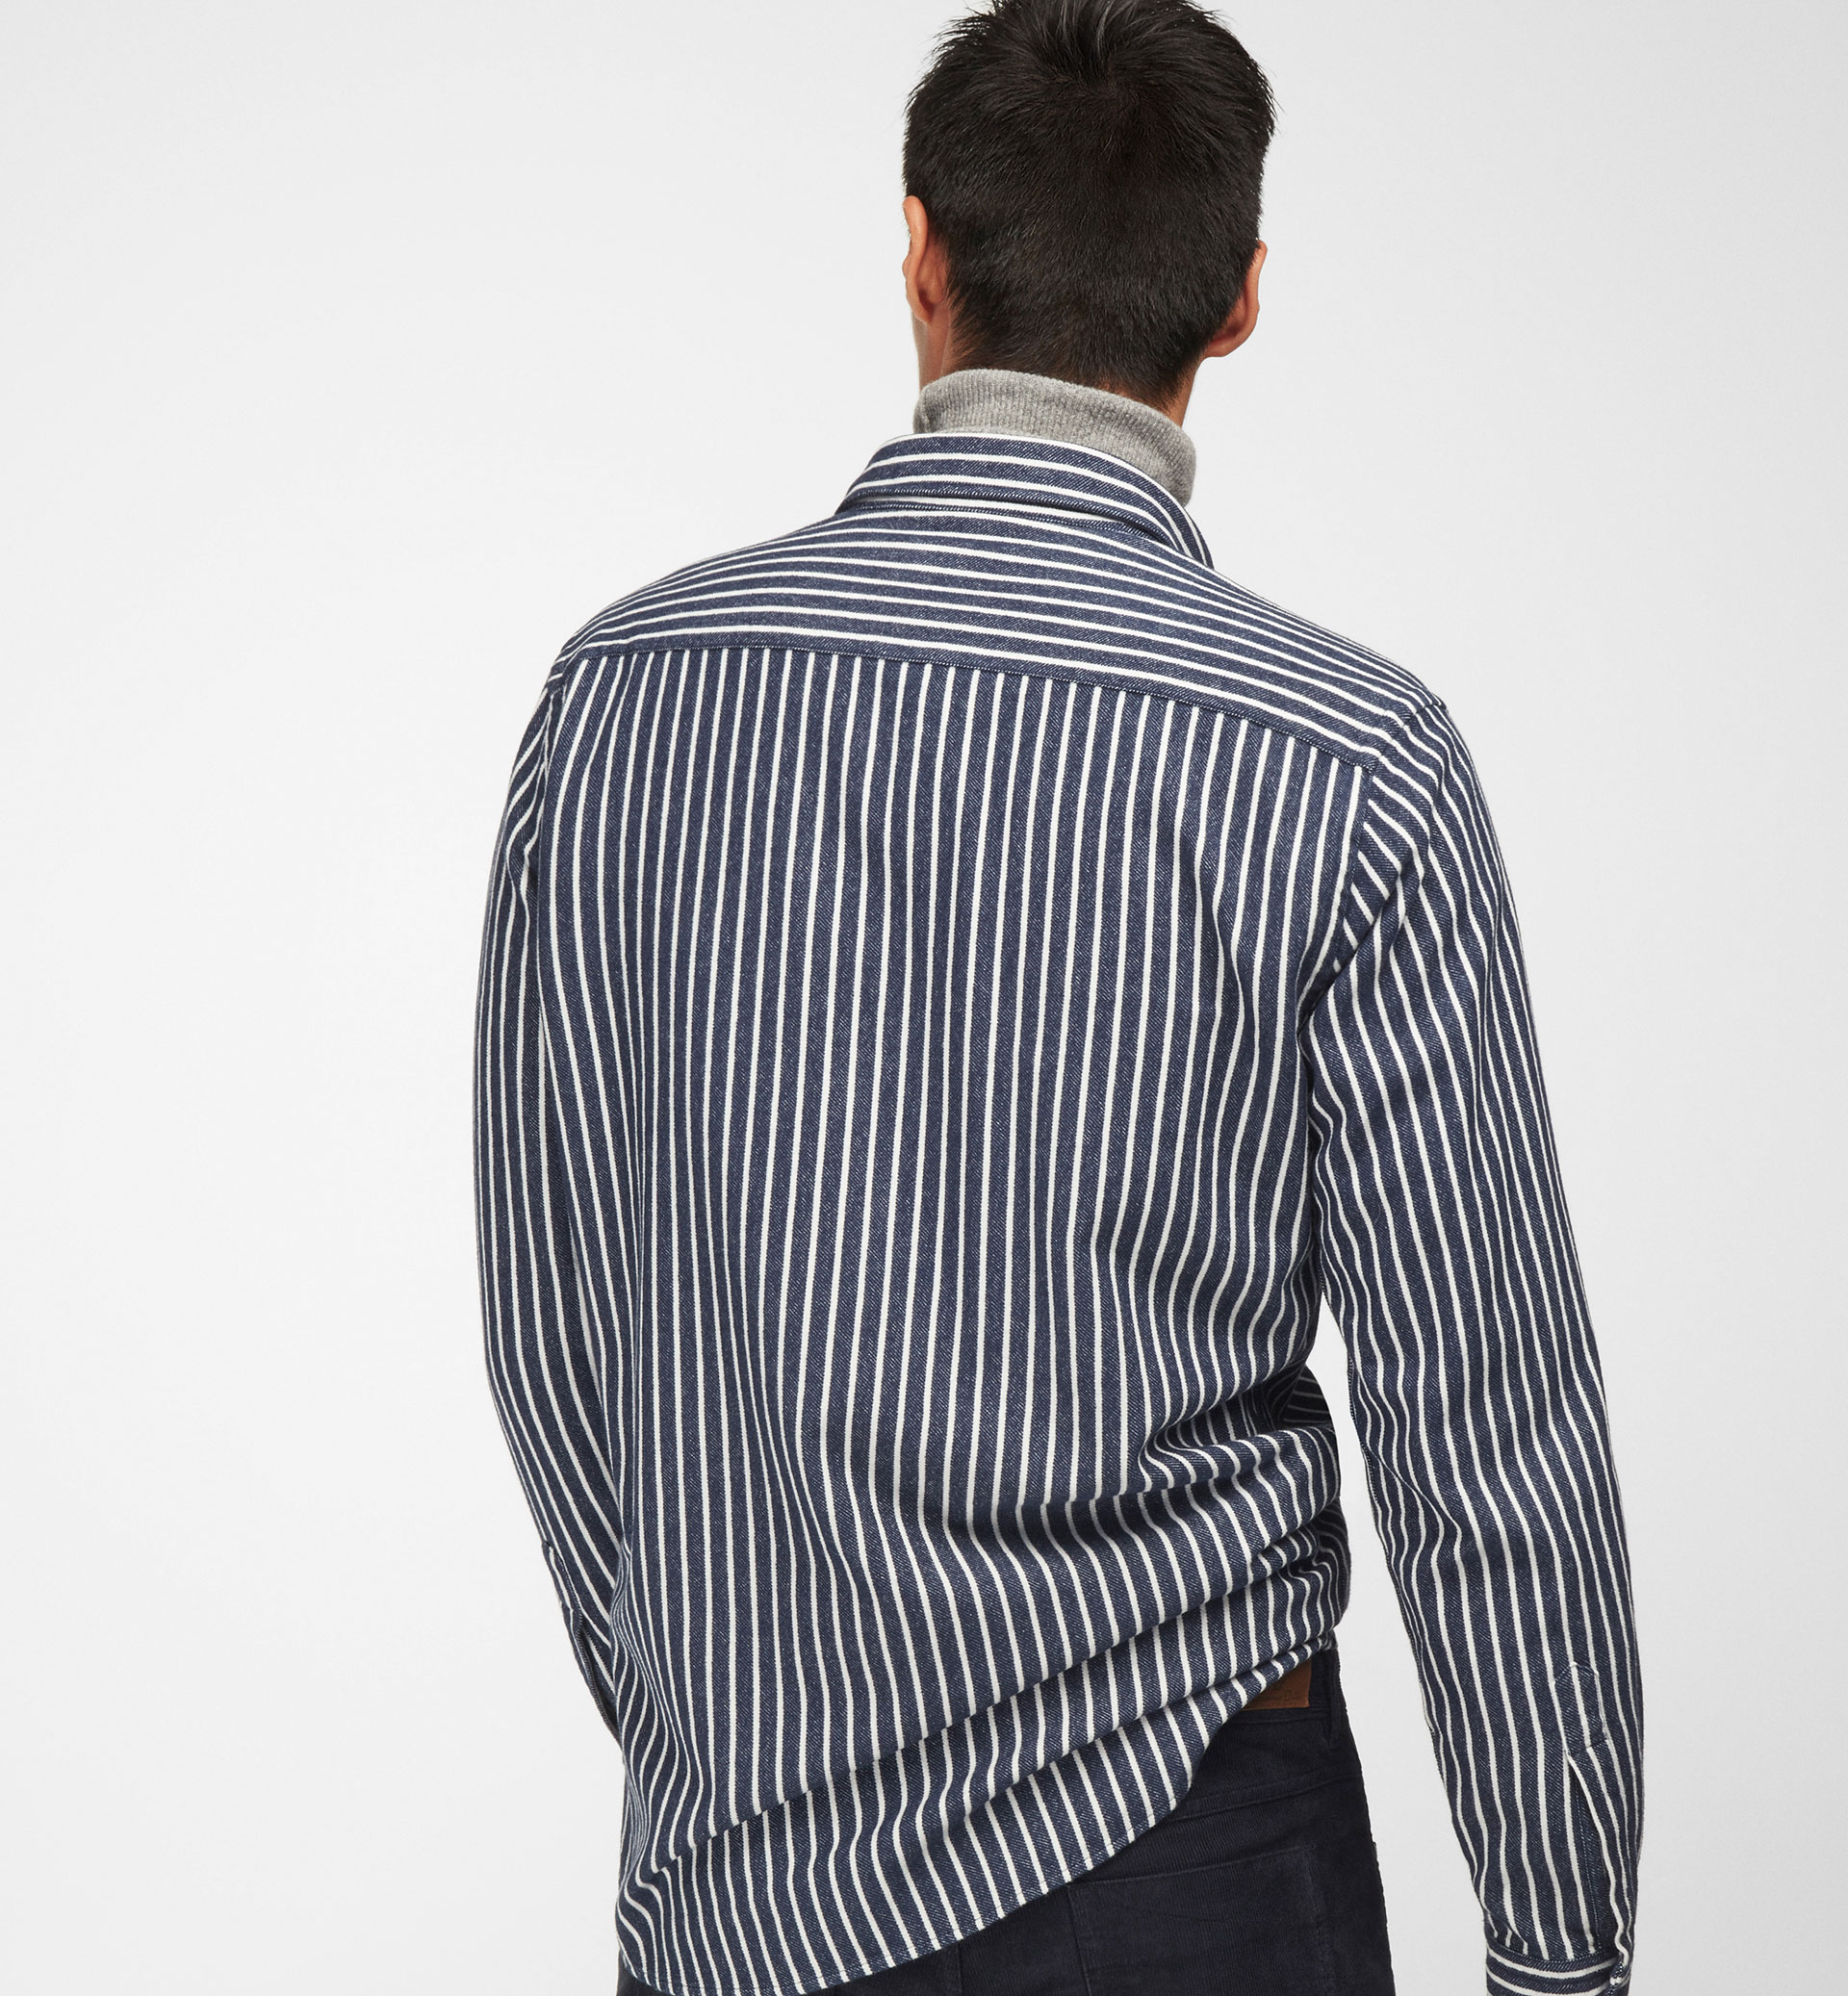 CHUNKY BLUE AND WHITE STRIPE SHIRT